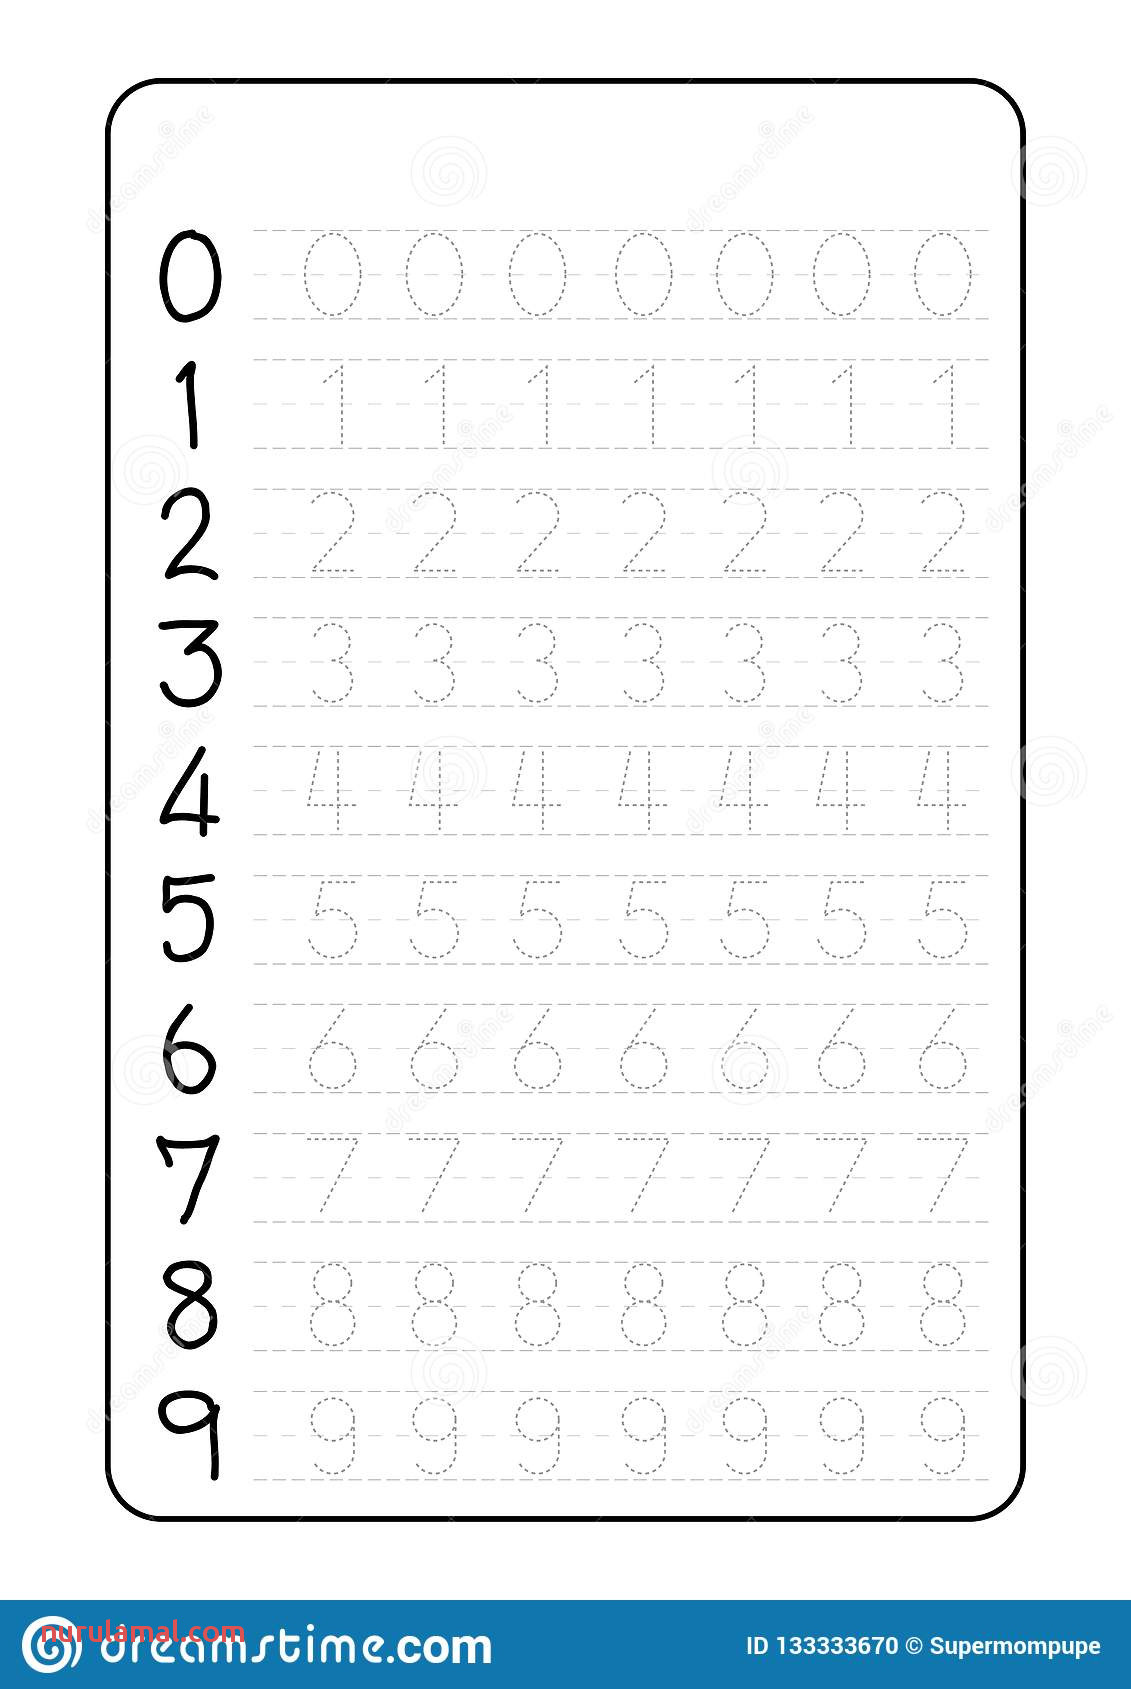 alphabet letters tracing worksheet alphabet letters number formation activity sheets kindergarten kids paper ready to